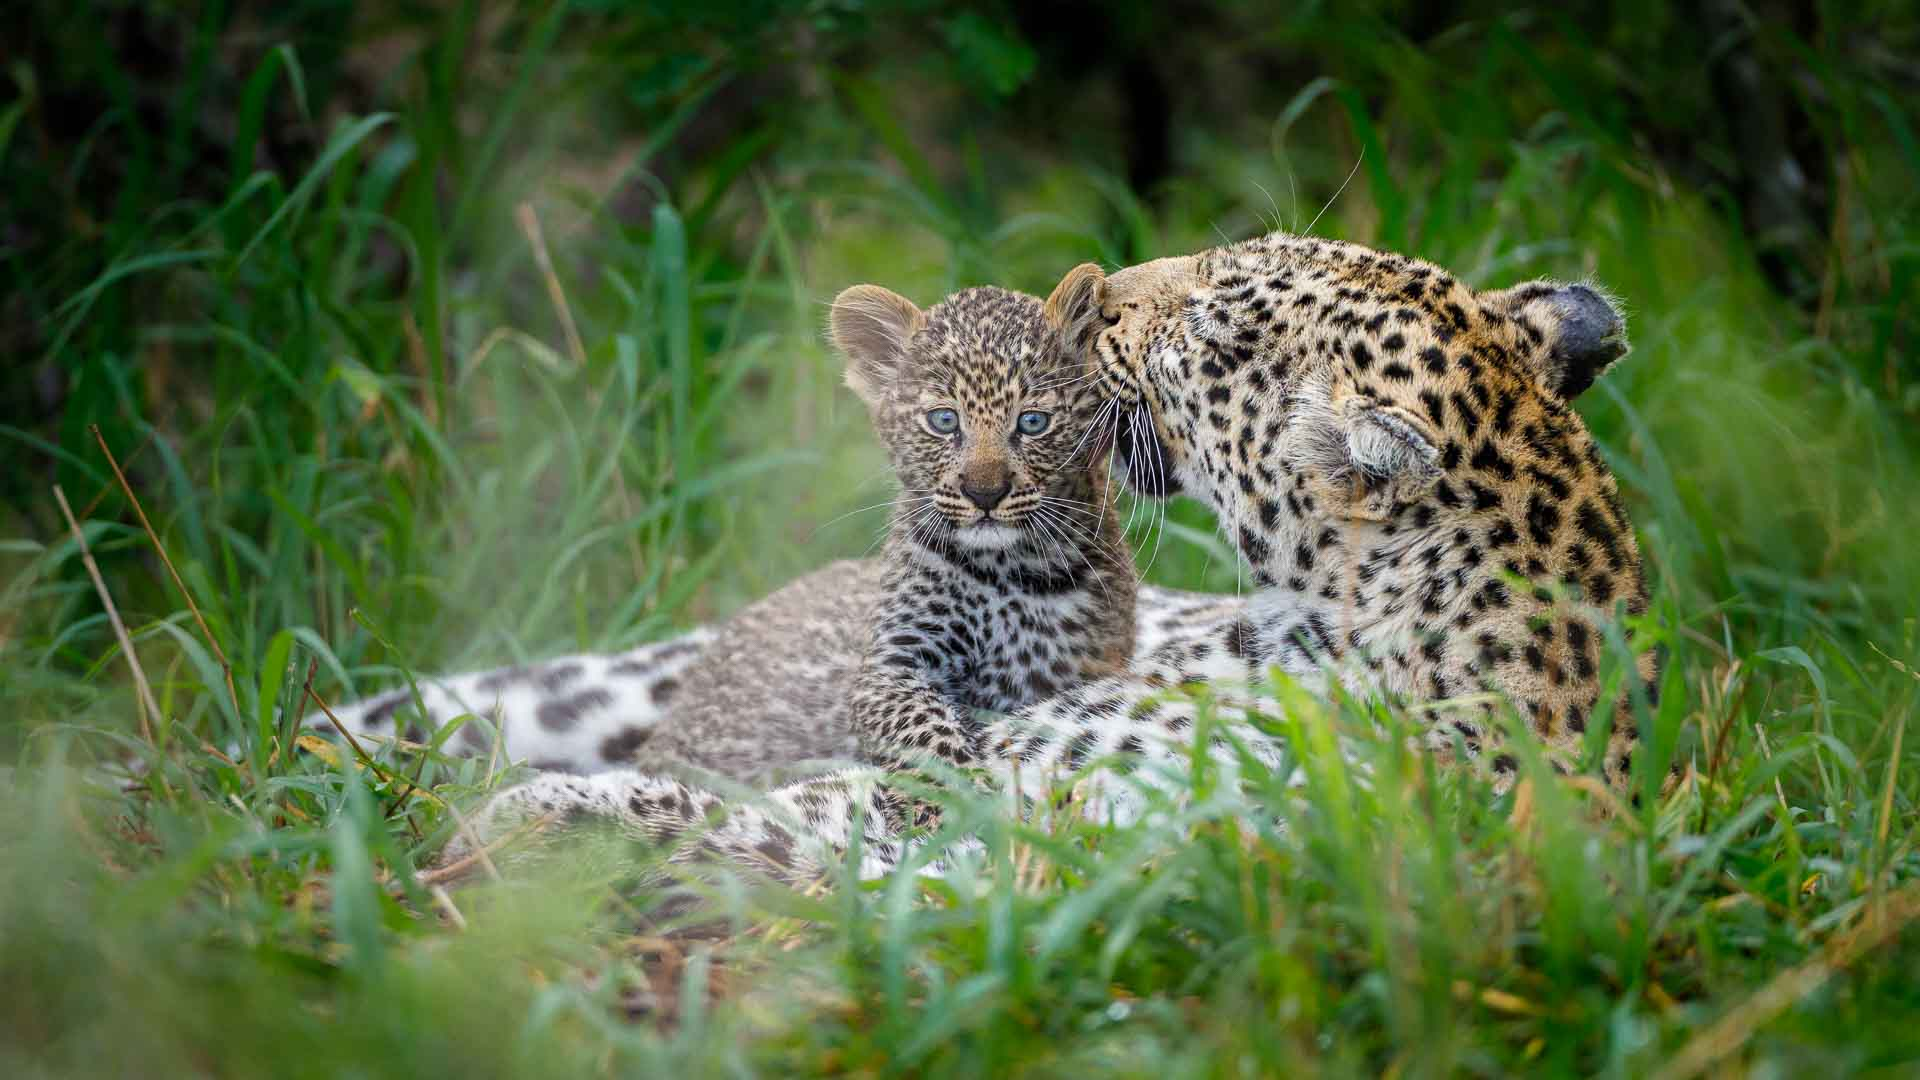 Tanda Tula - leopard mother and cub at Tanda Tula, Timbavati, Greater Kruger